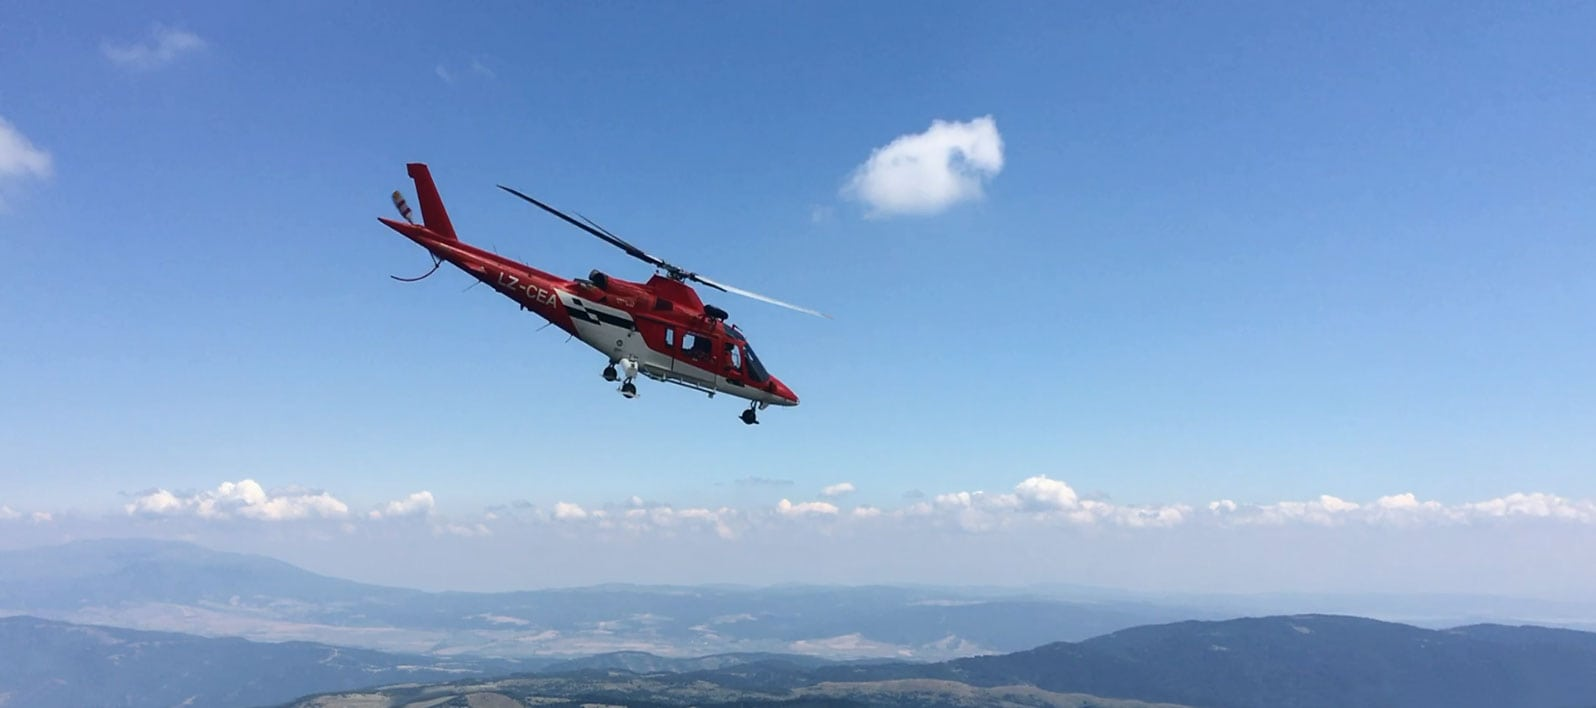 Helicopter: AugustaWestland A 139 avio medical helicopter with whinch cabel system